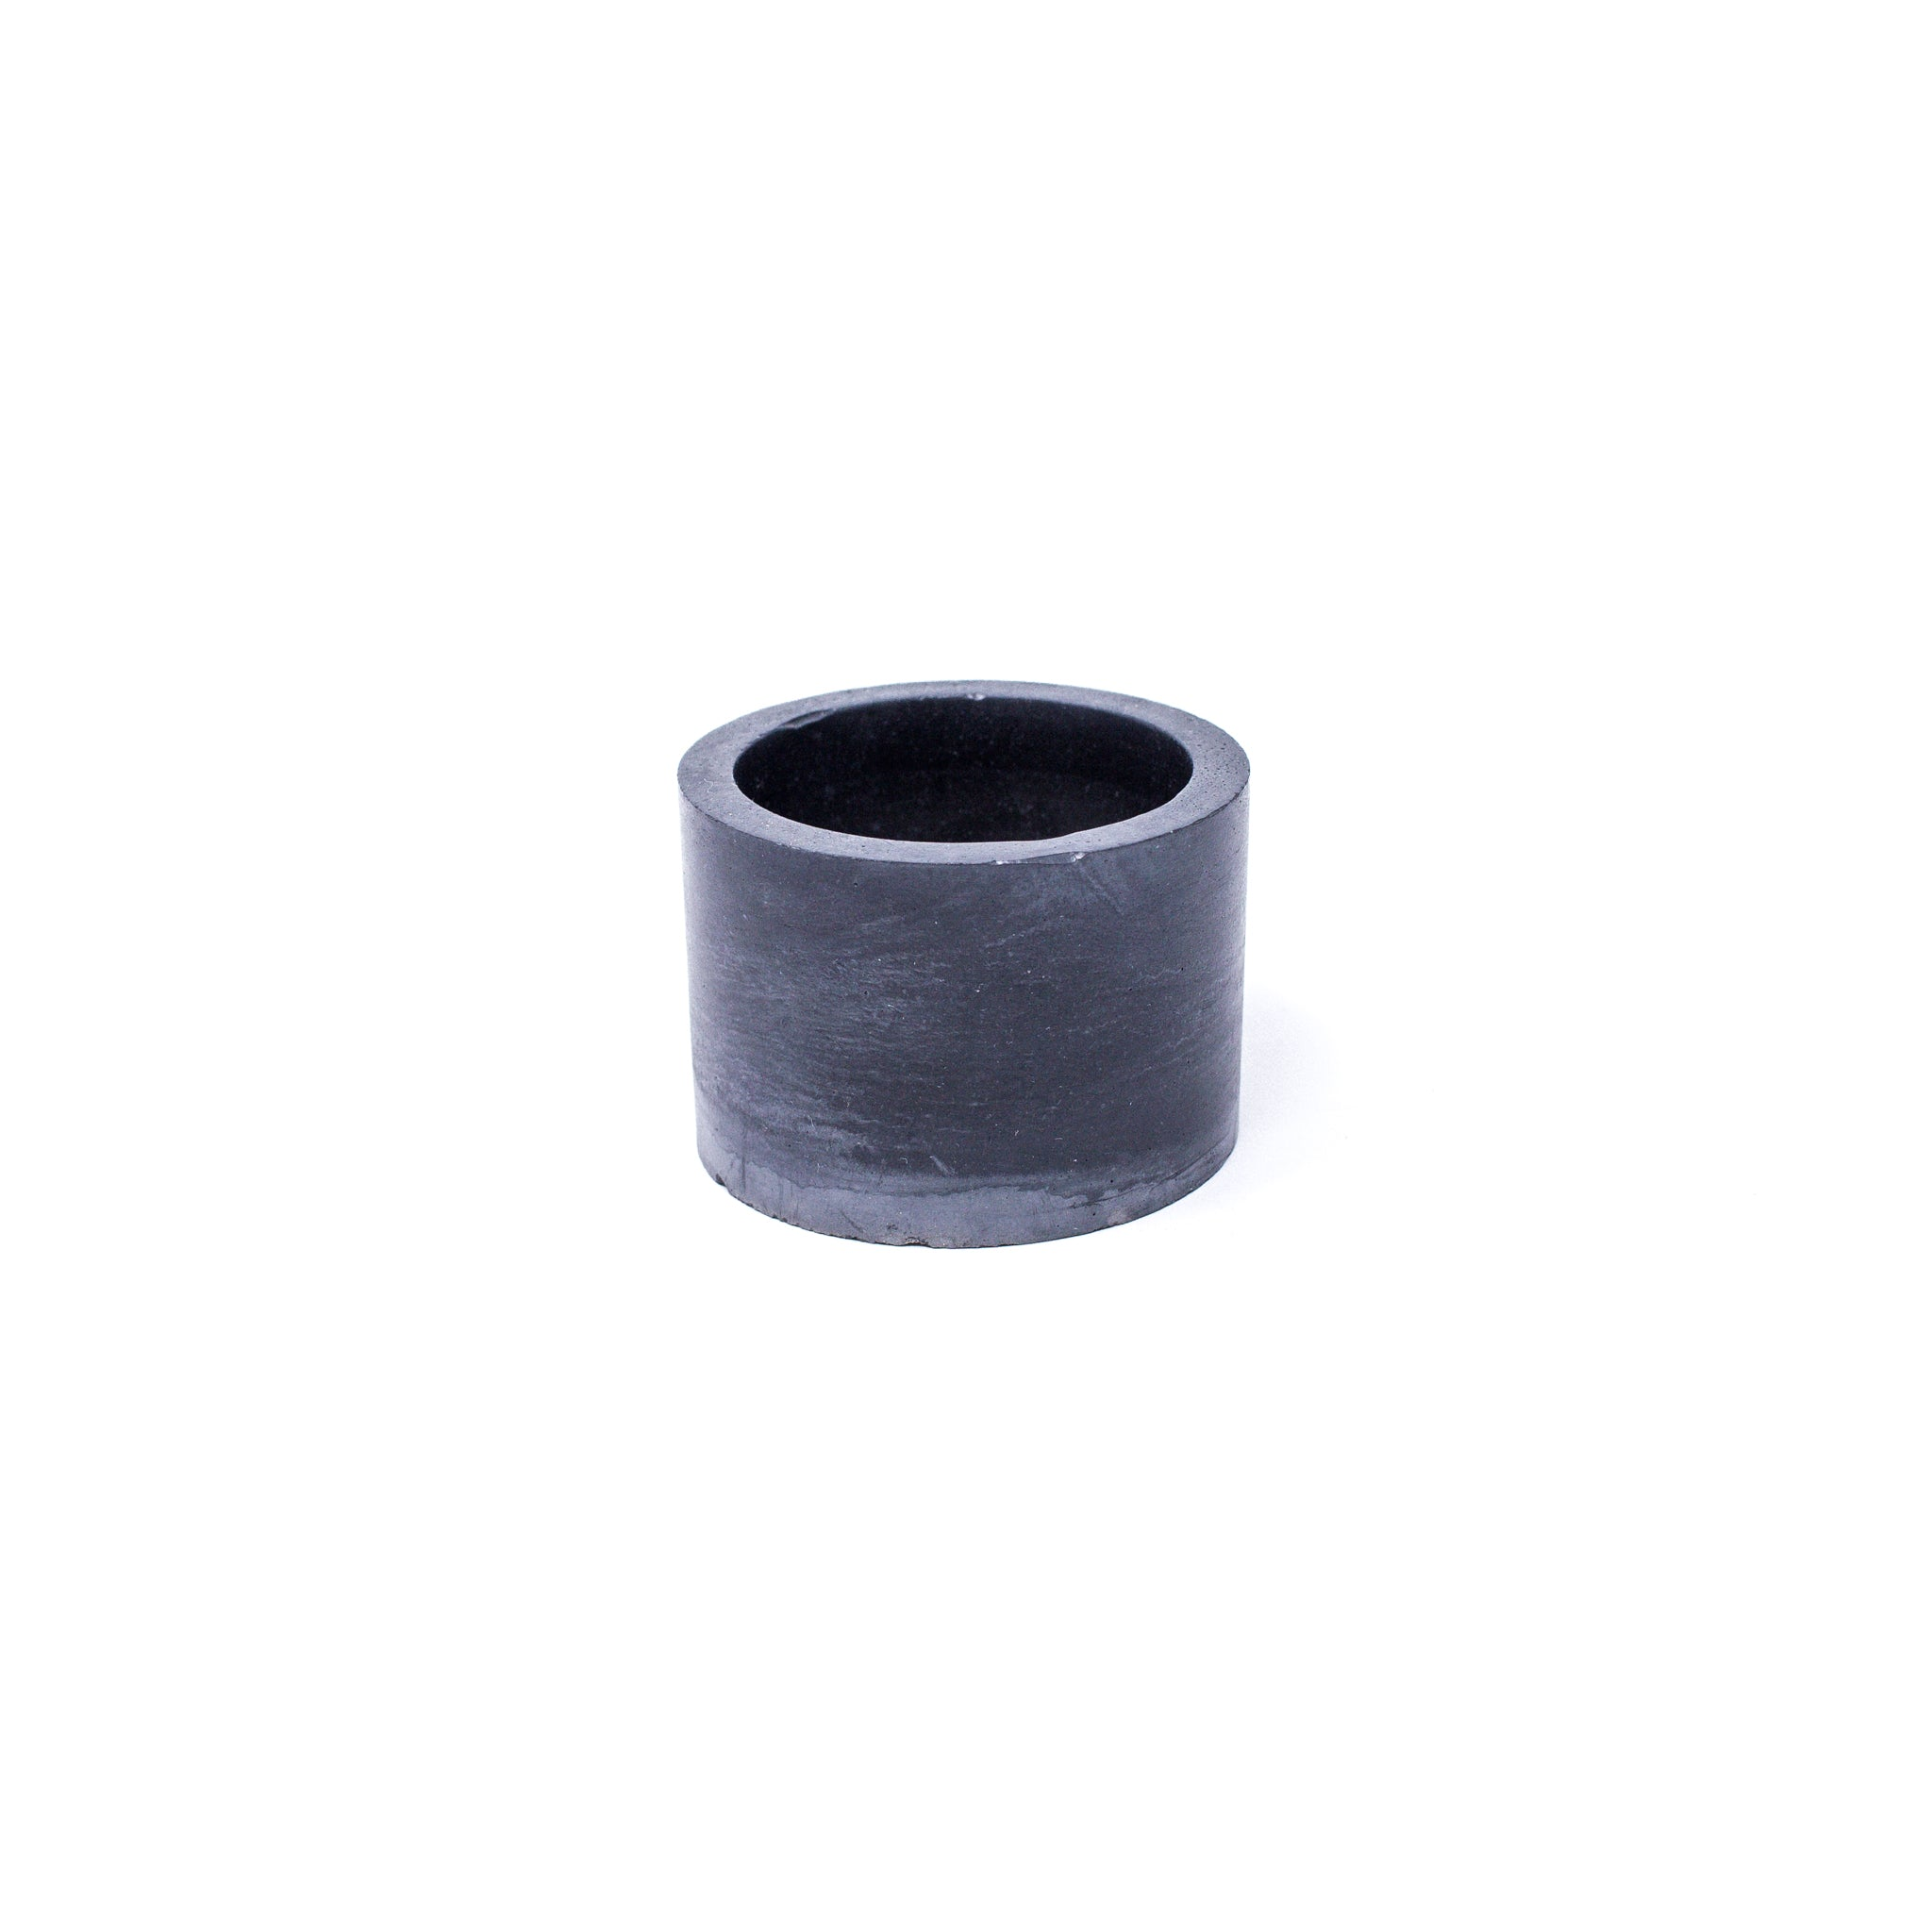 Concrete Planter: Short Cylinder (Black Marble)